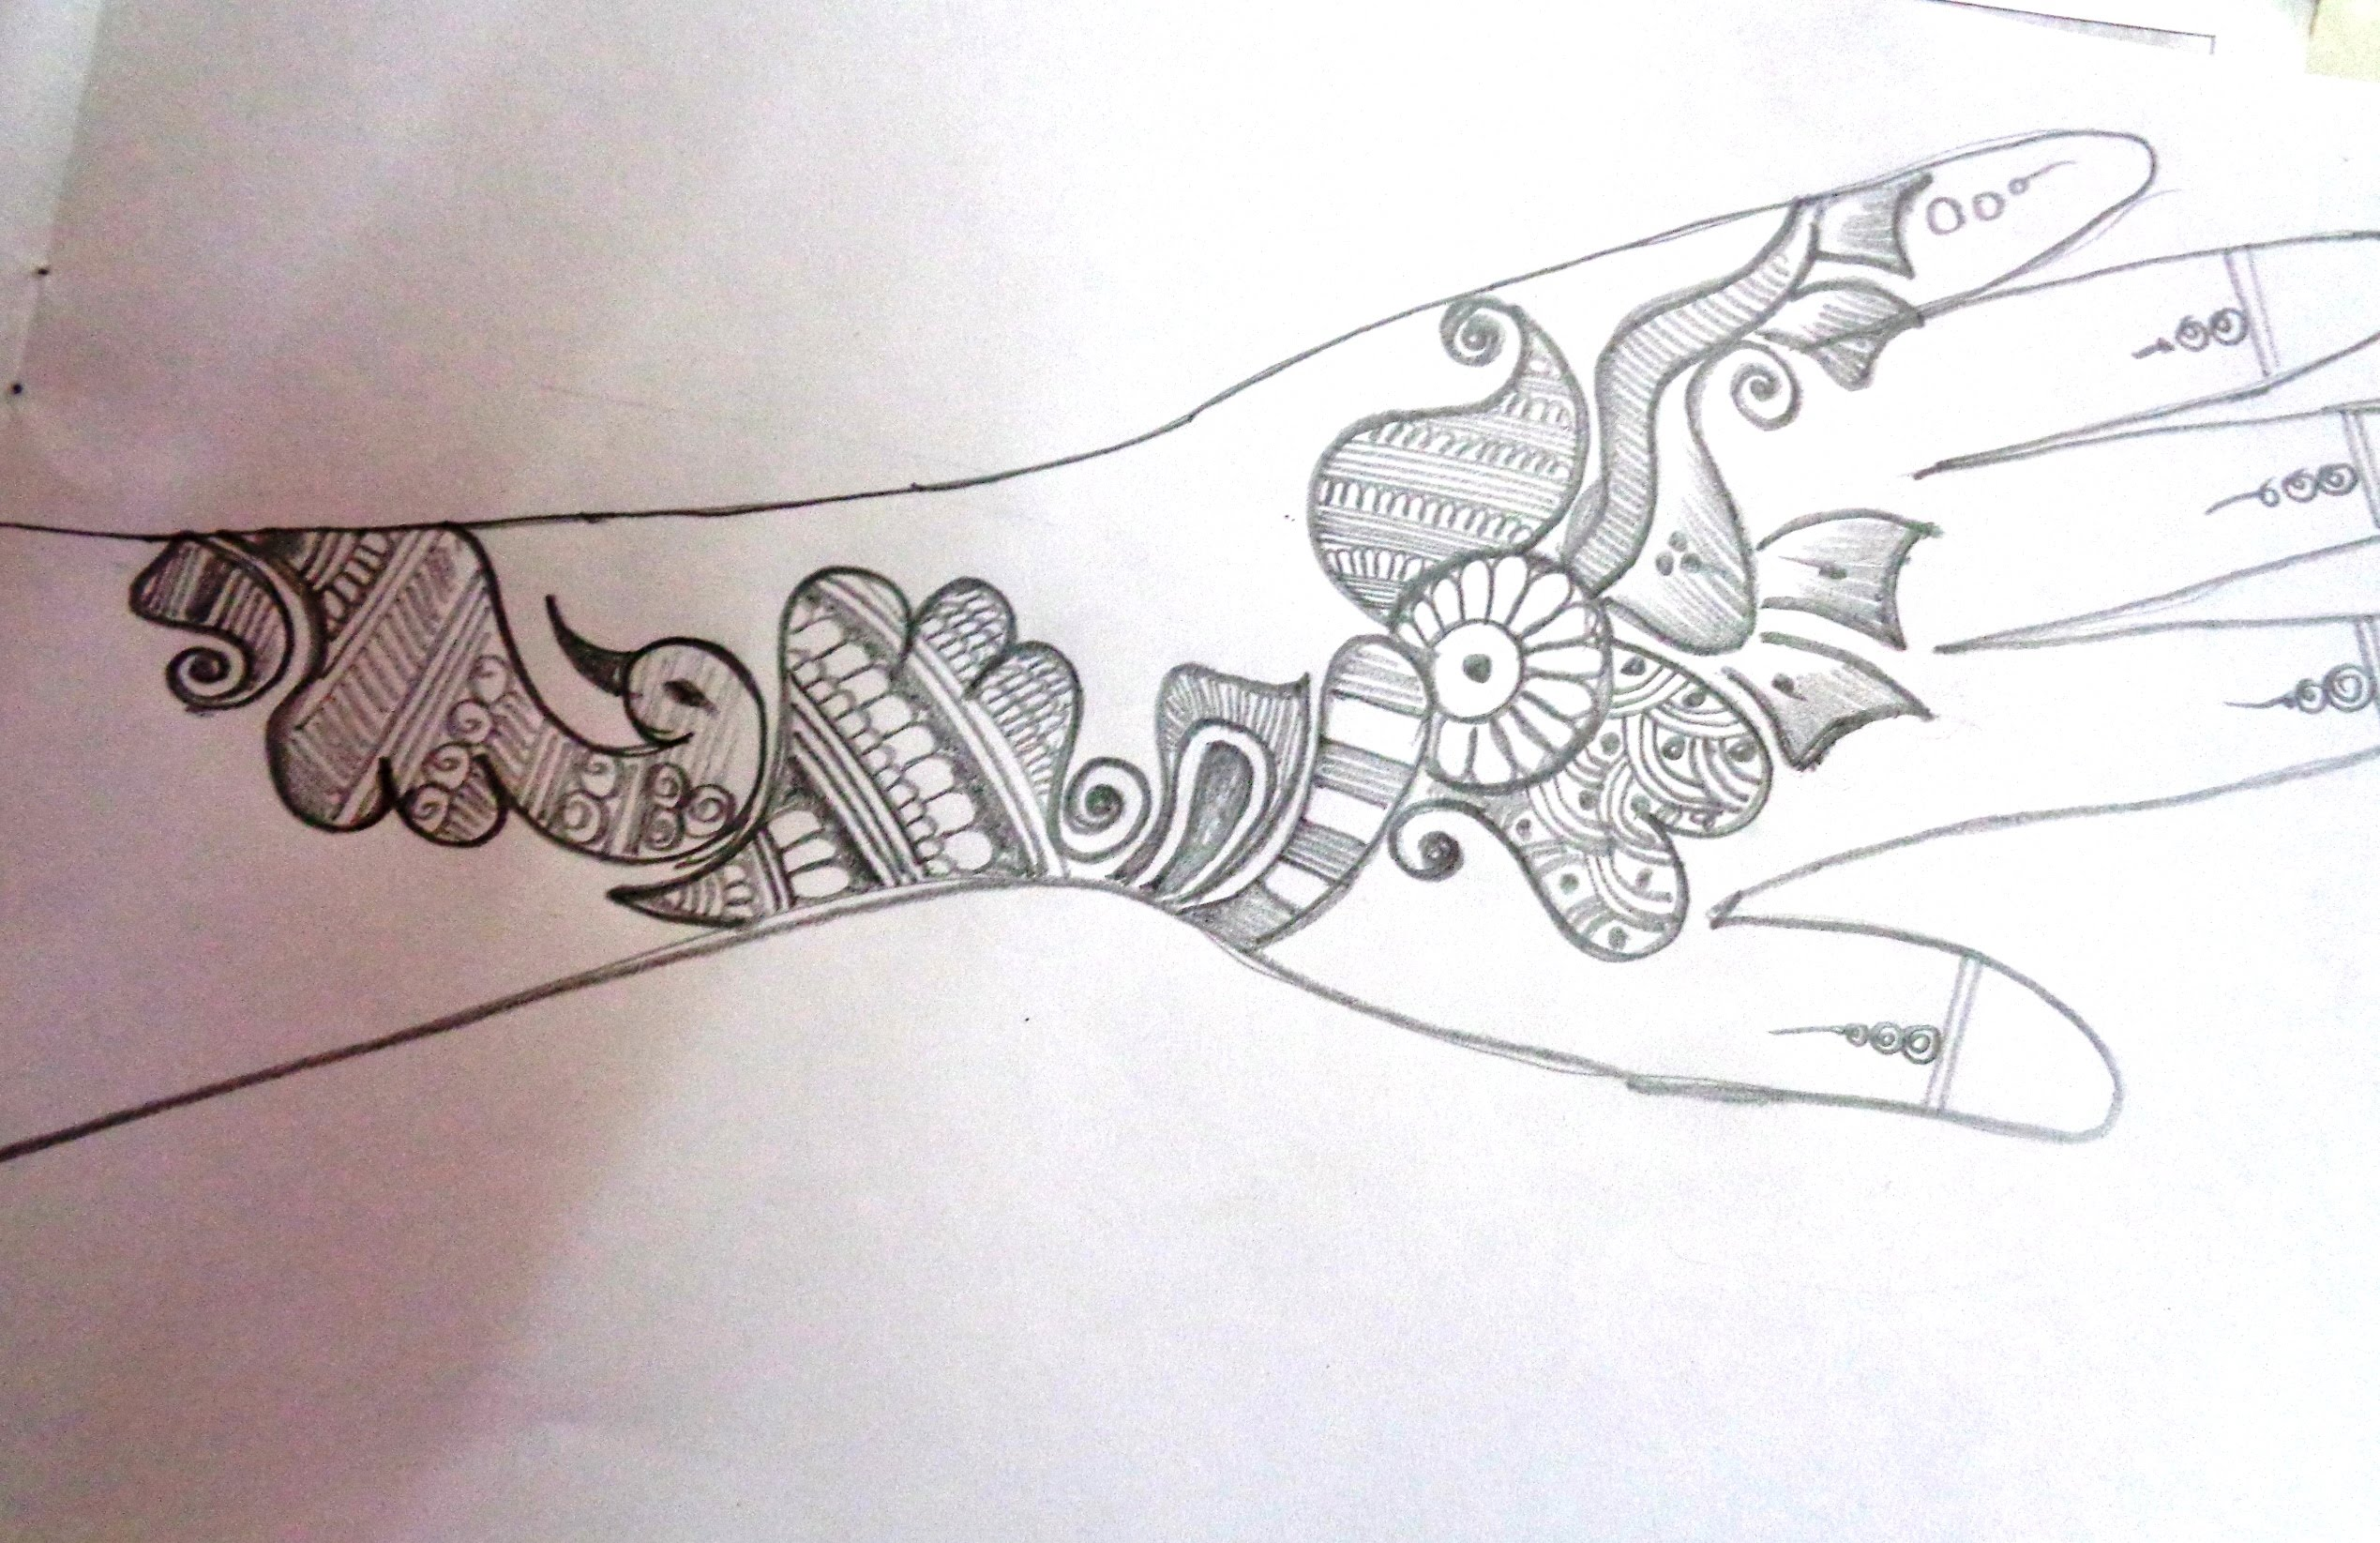 Drawn mehndi abstract A How Mehndi/Henna On Paper